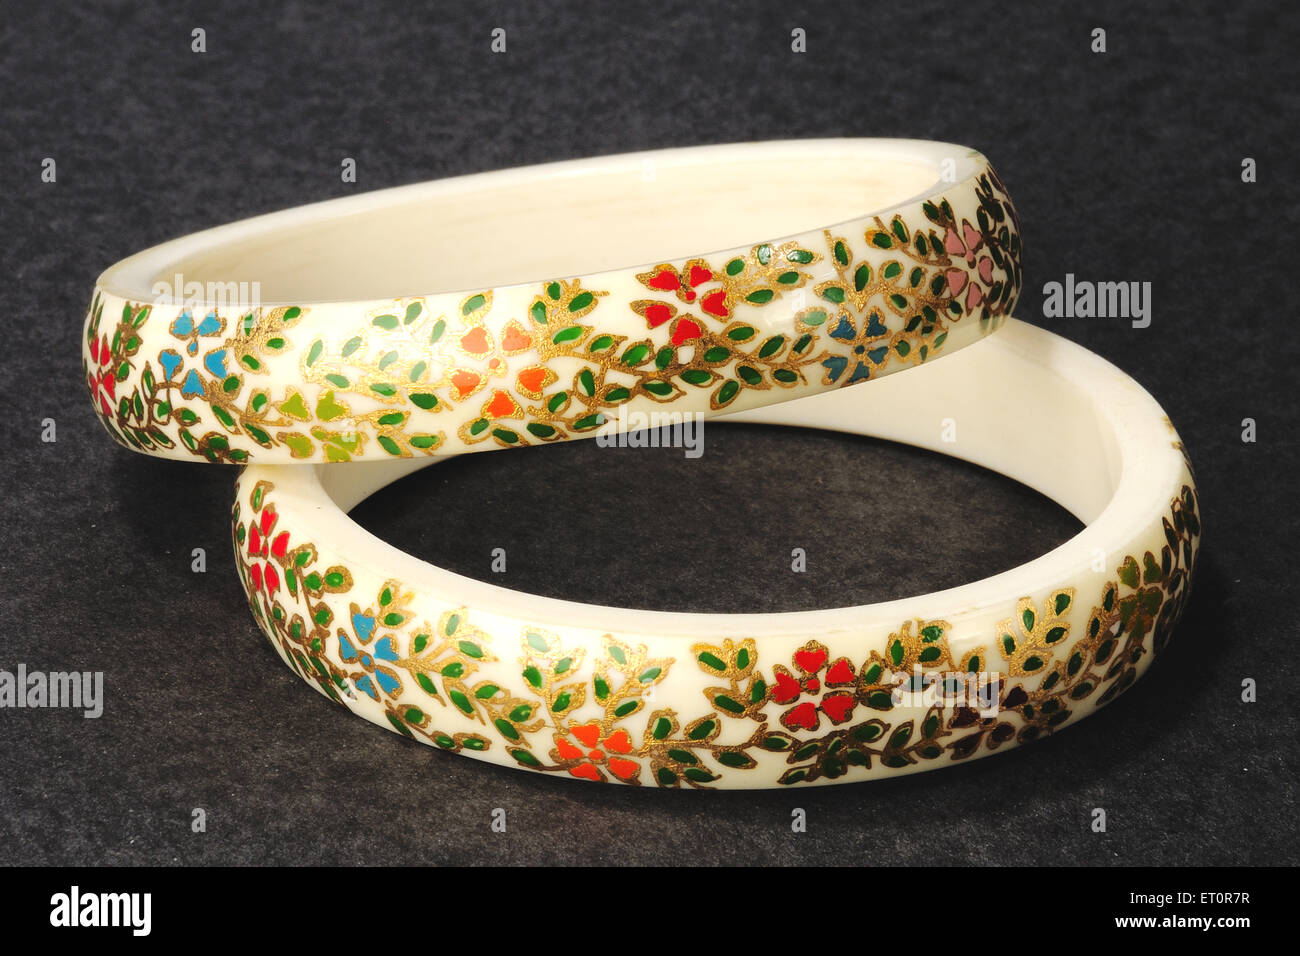 Designer bangles black background ; India - Stock Image